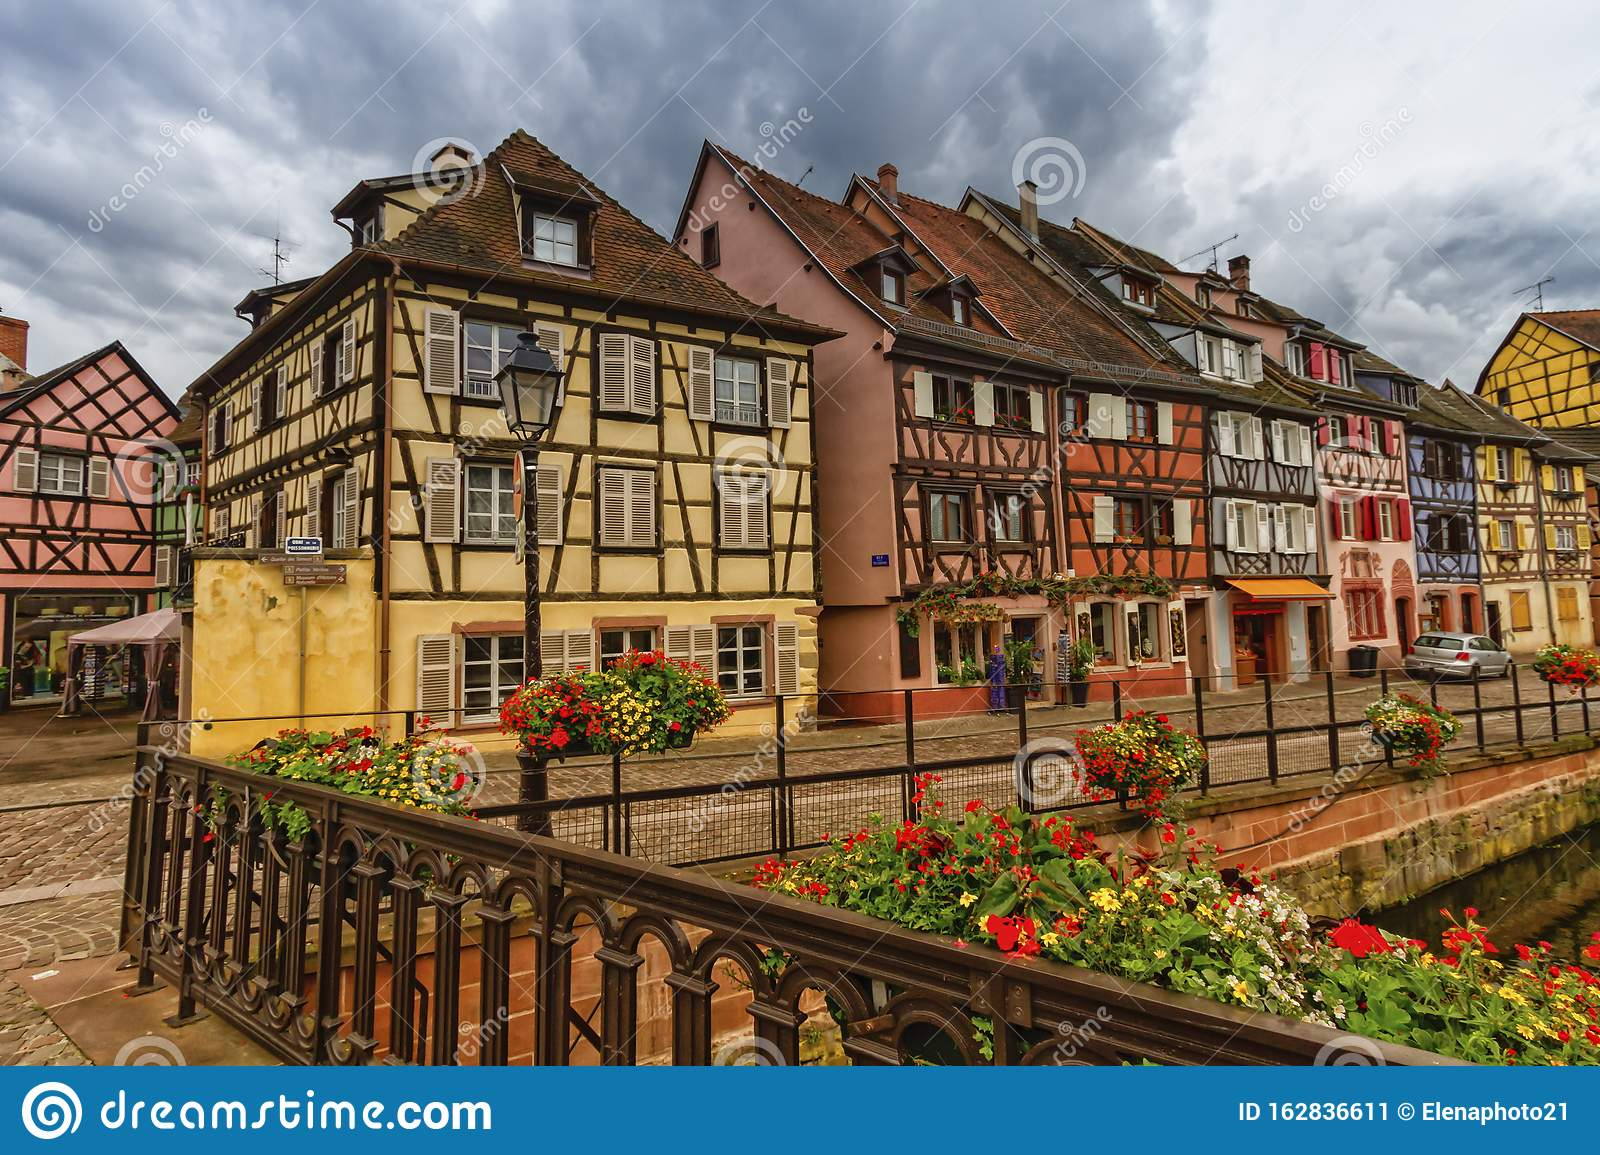 Traditional half-timbered houses in Colmar, Alsace, France